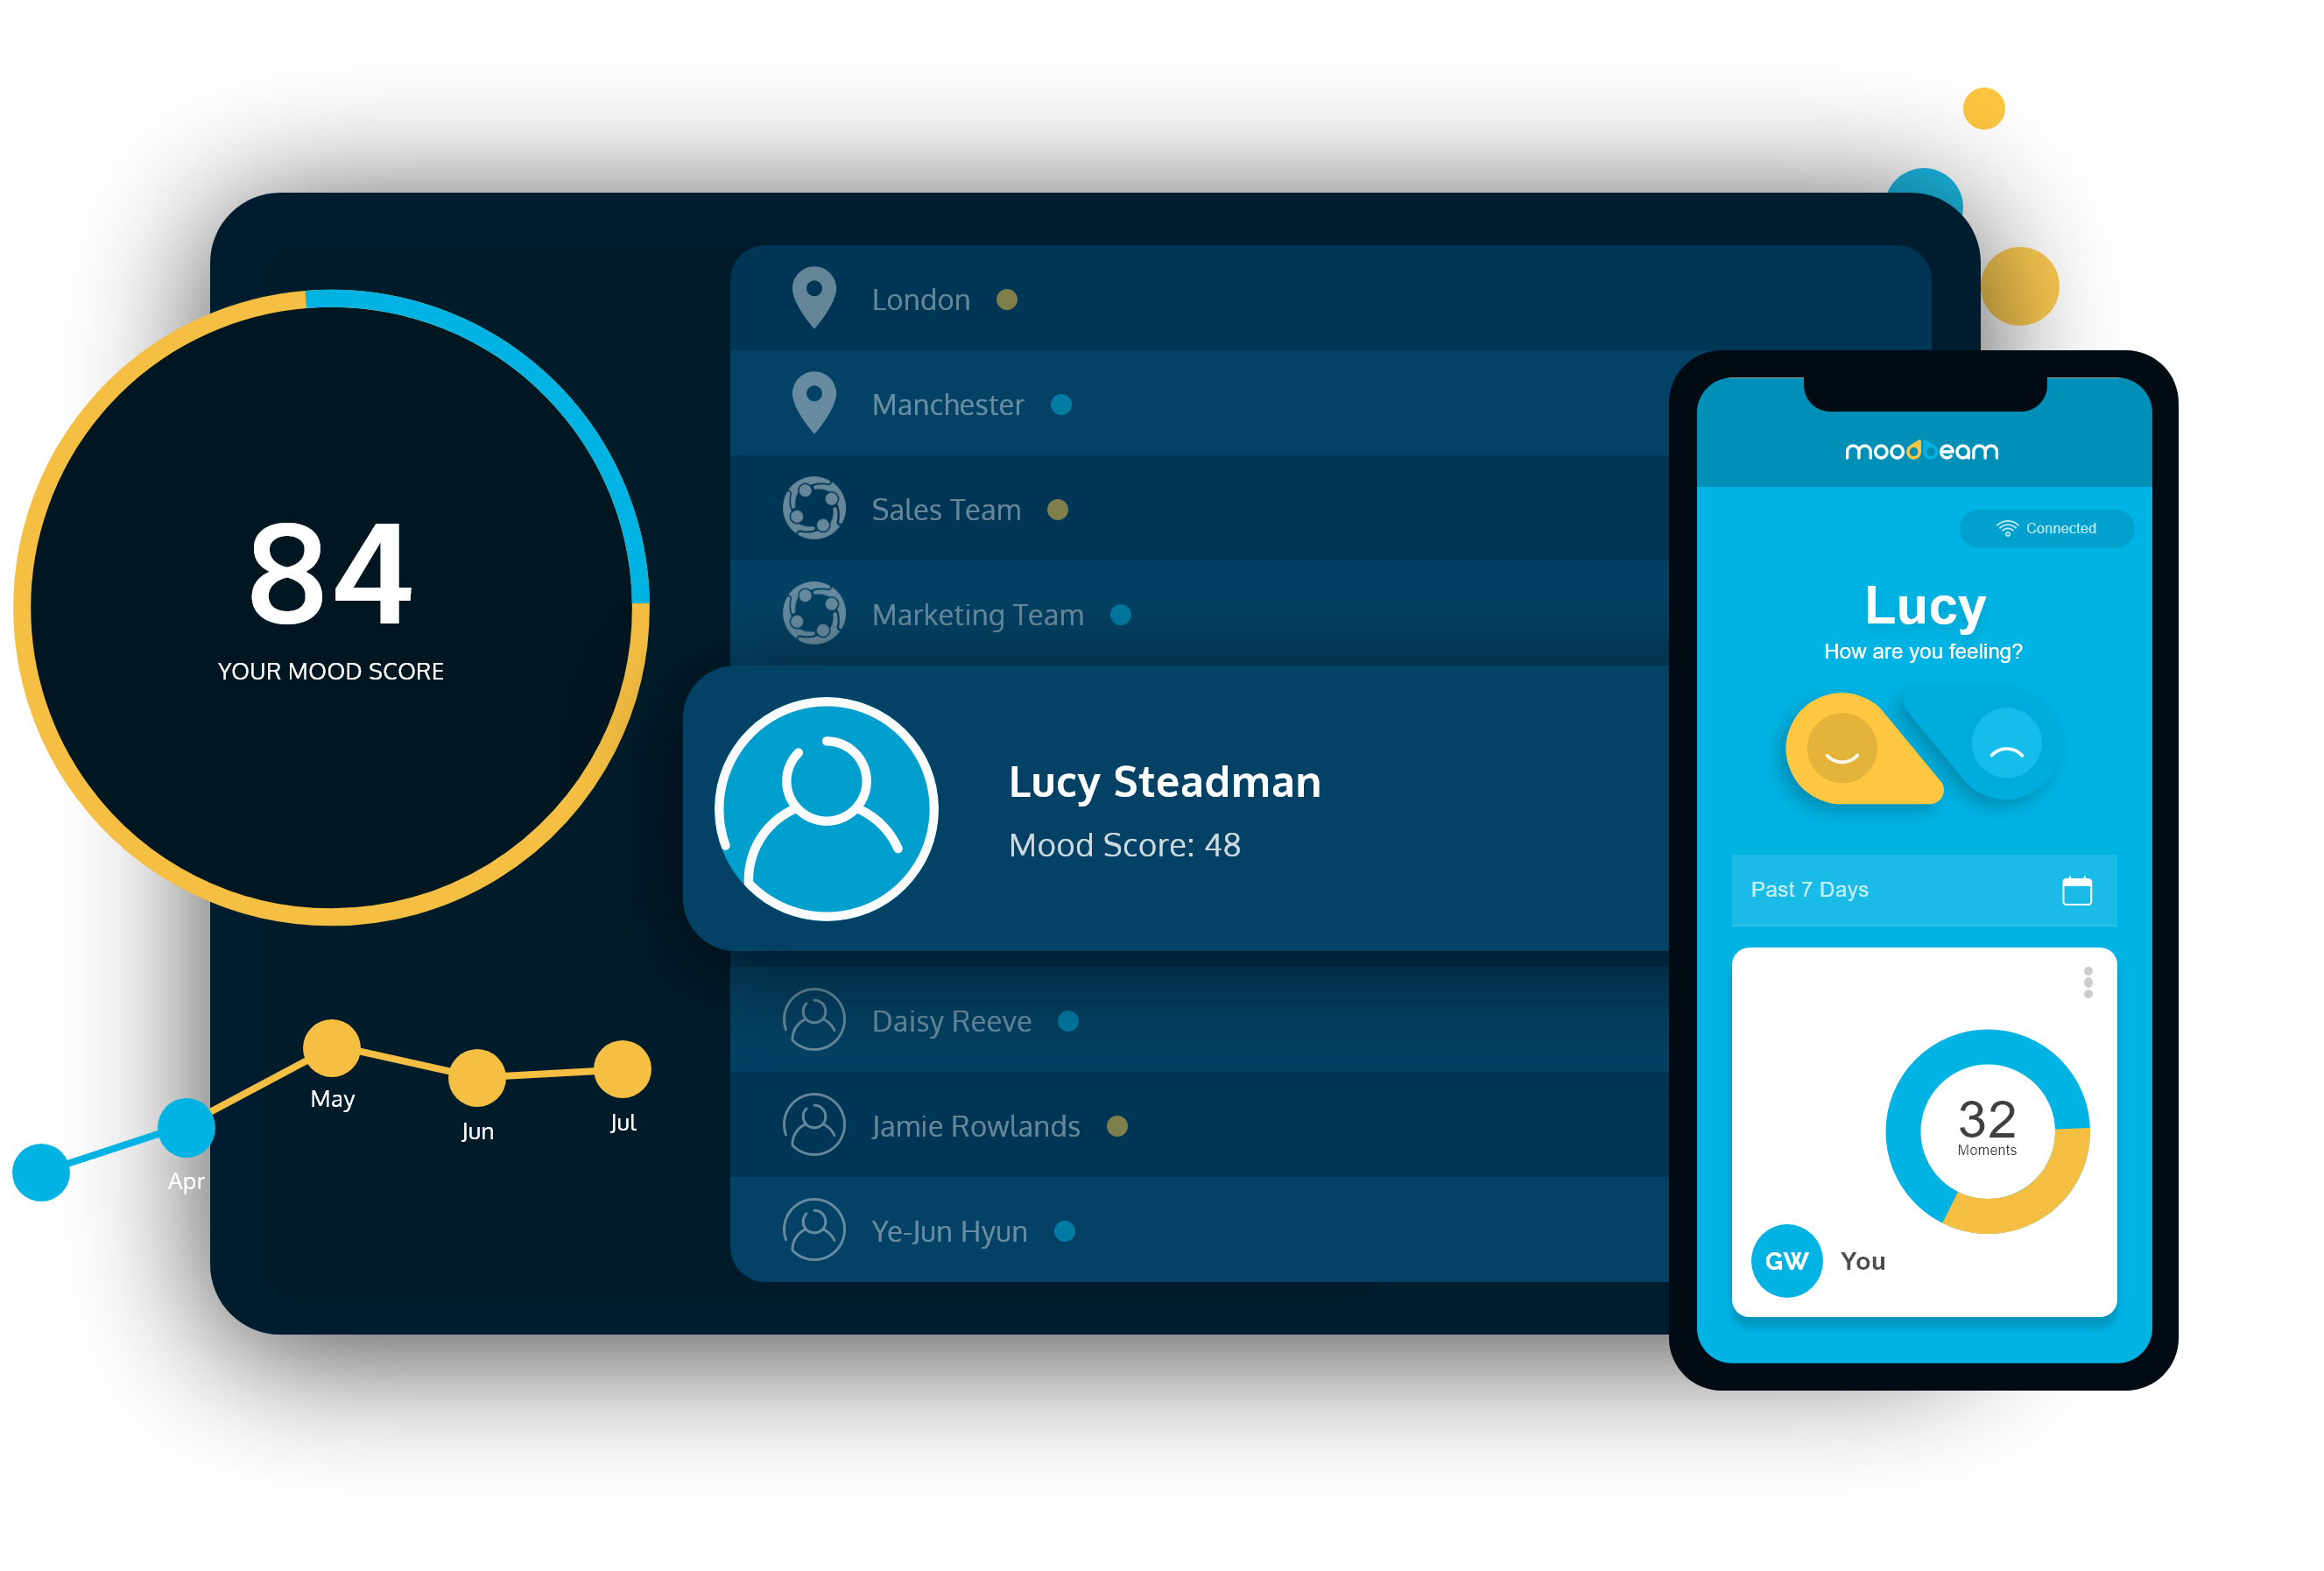 Moodbeam Dashboard showing example of Mood Score, Mood Comparison chart, Moodbeam Mobile App and list of locations, teams and individuals.